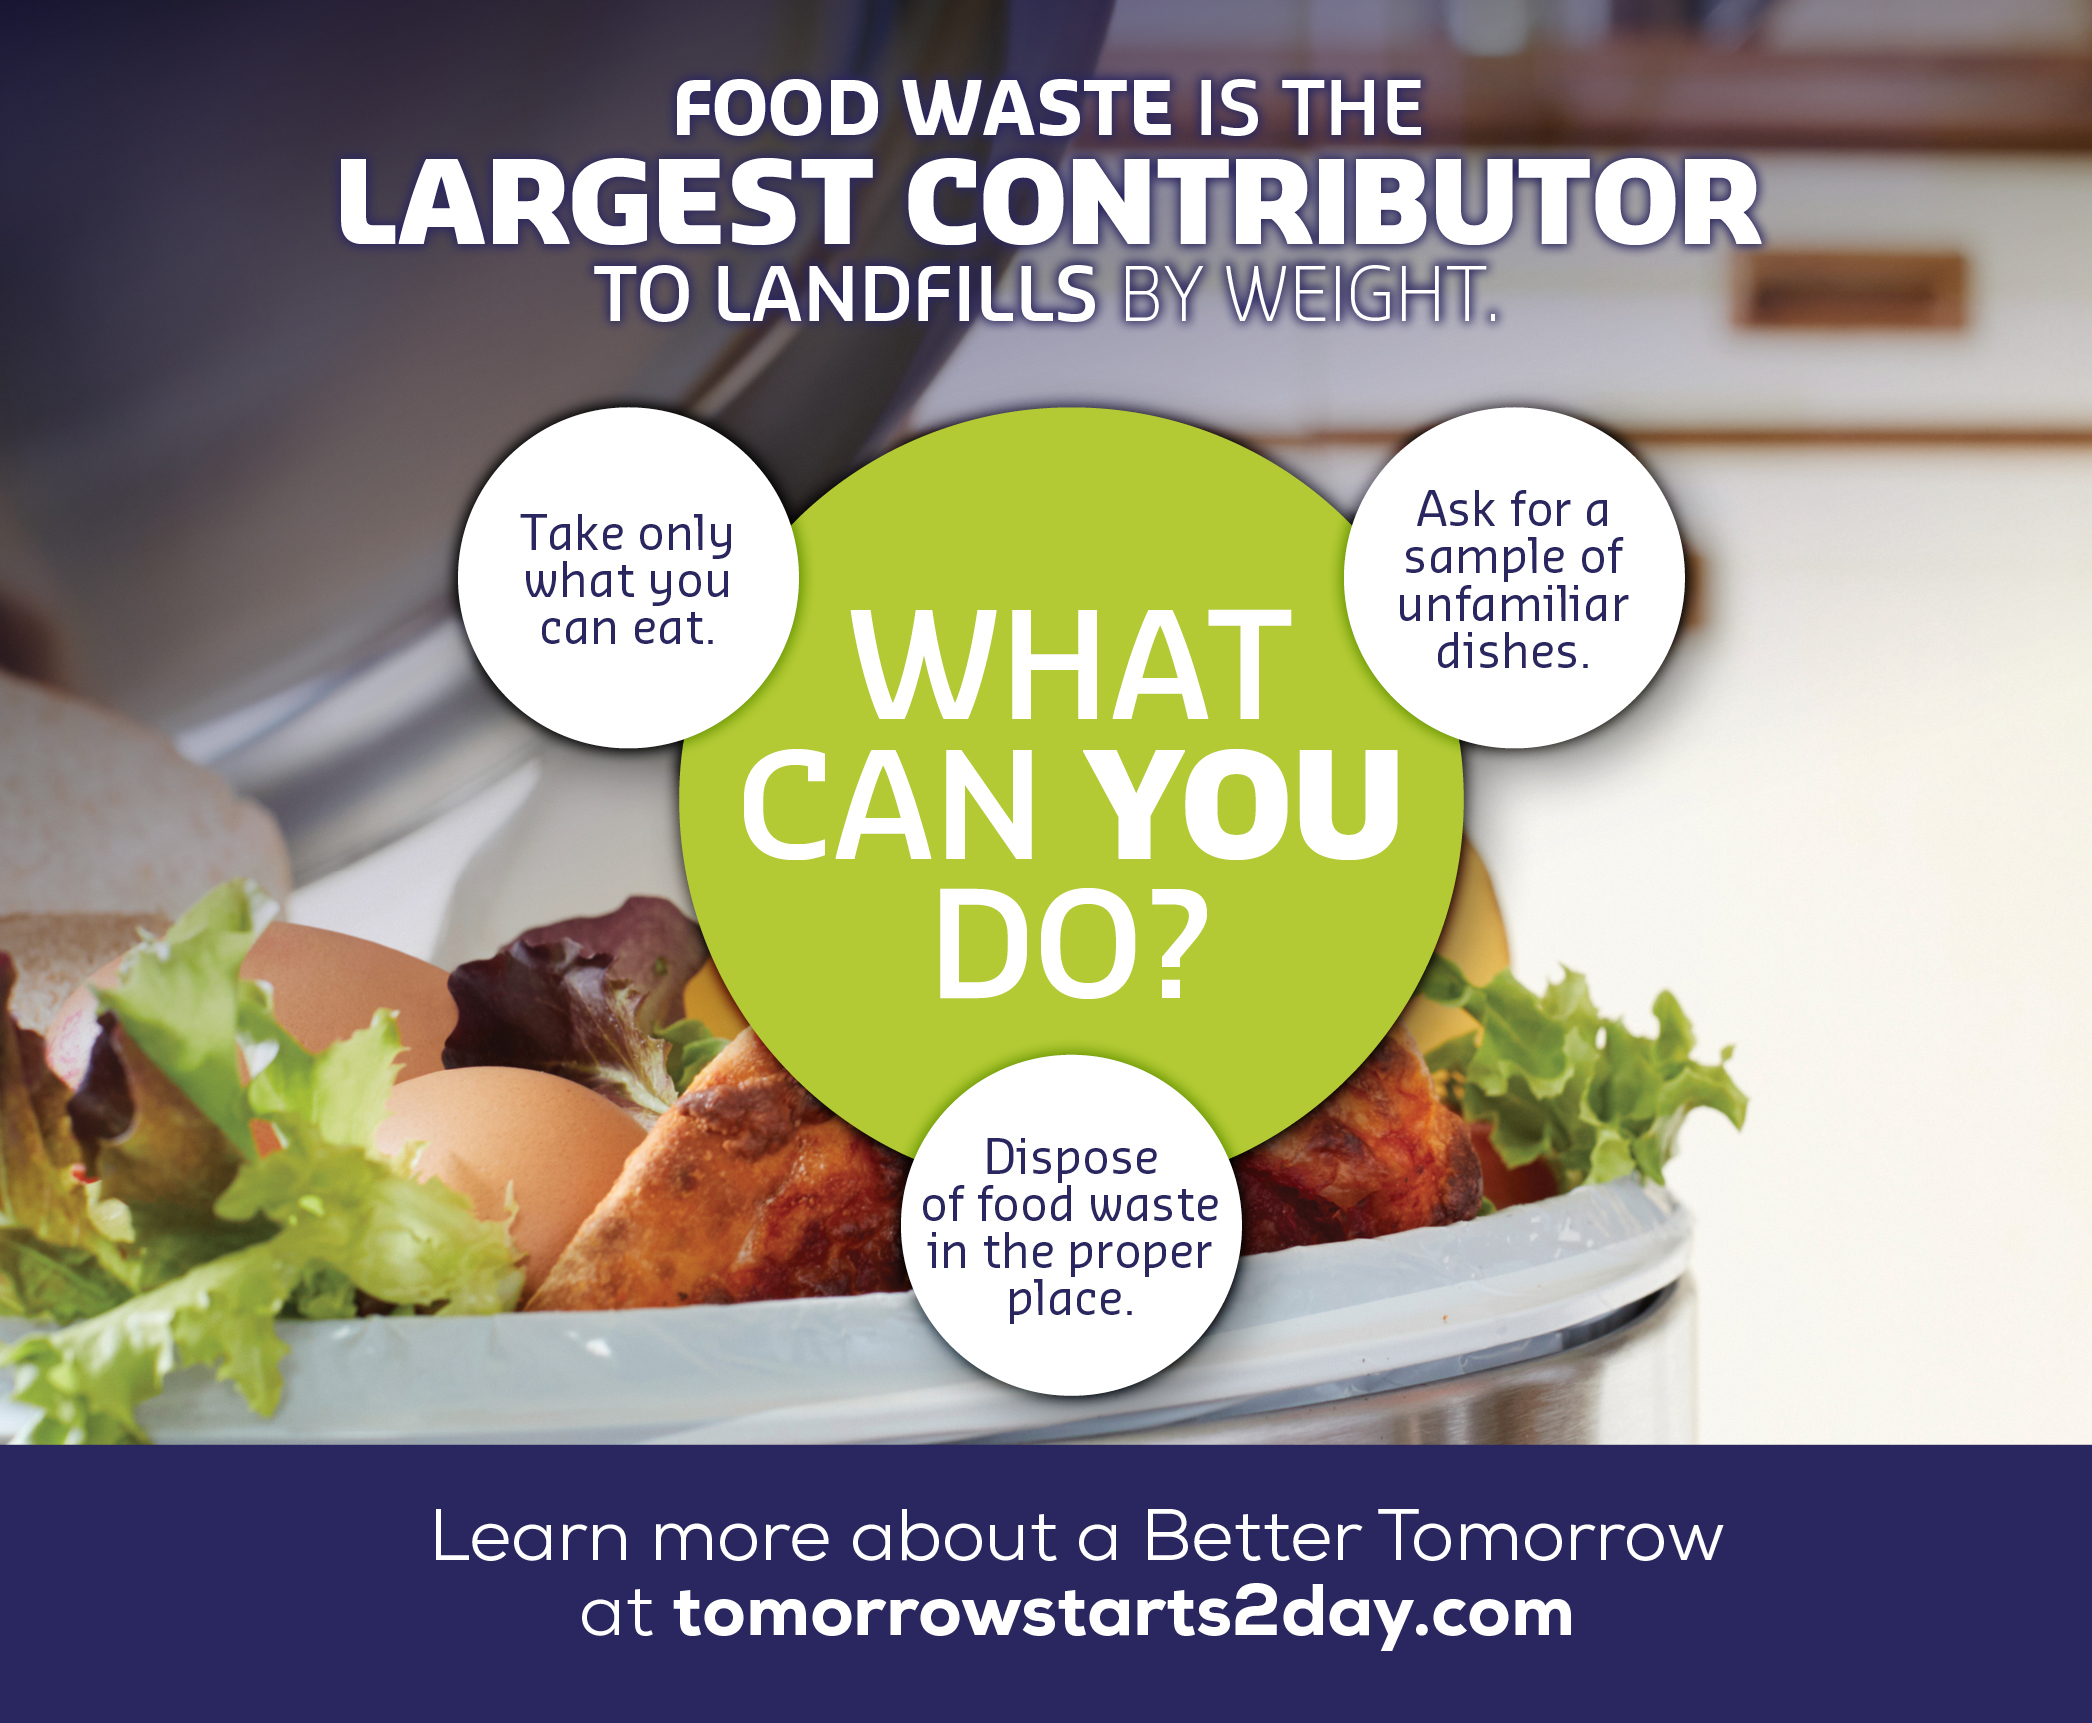 Food waste is the largest contributor to landfills by weight.  Take only what you can eat.  Ask for a sample of unfamiliar dishes.  Dispose of food waste in the proper place.